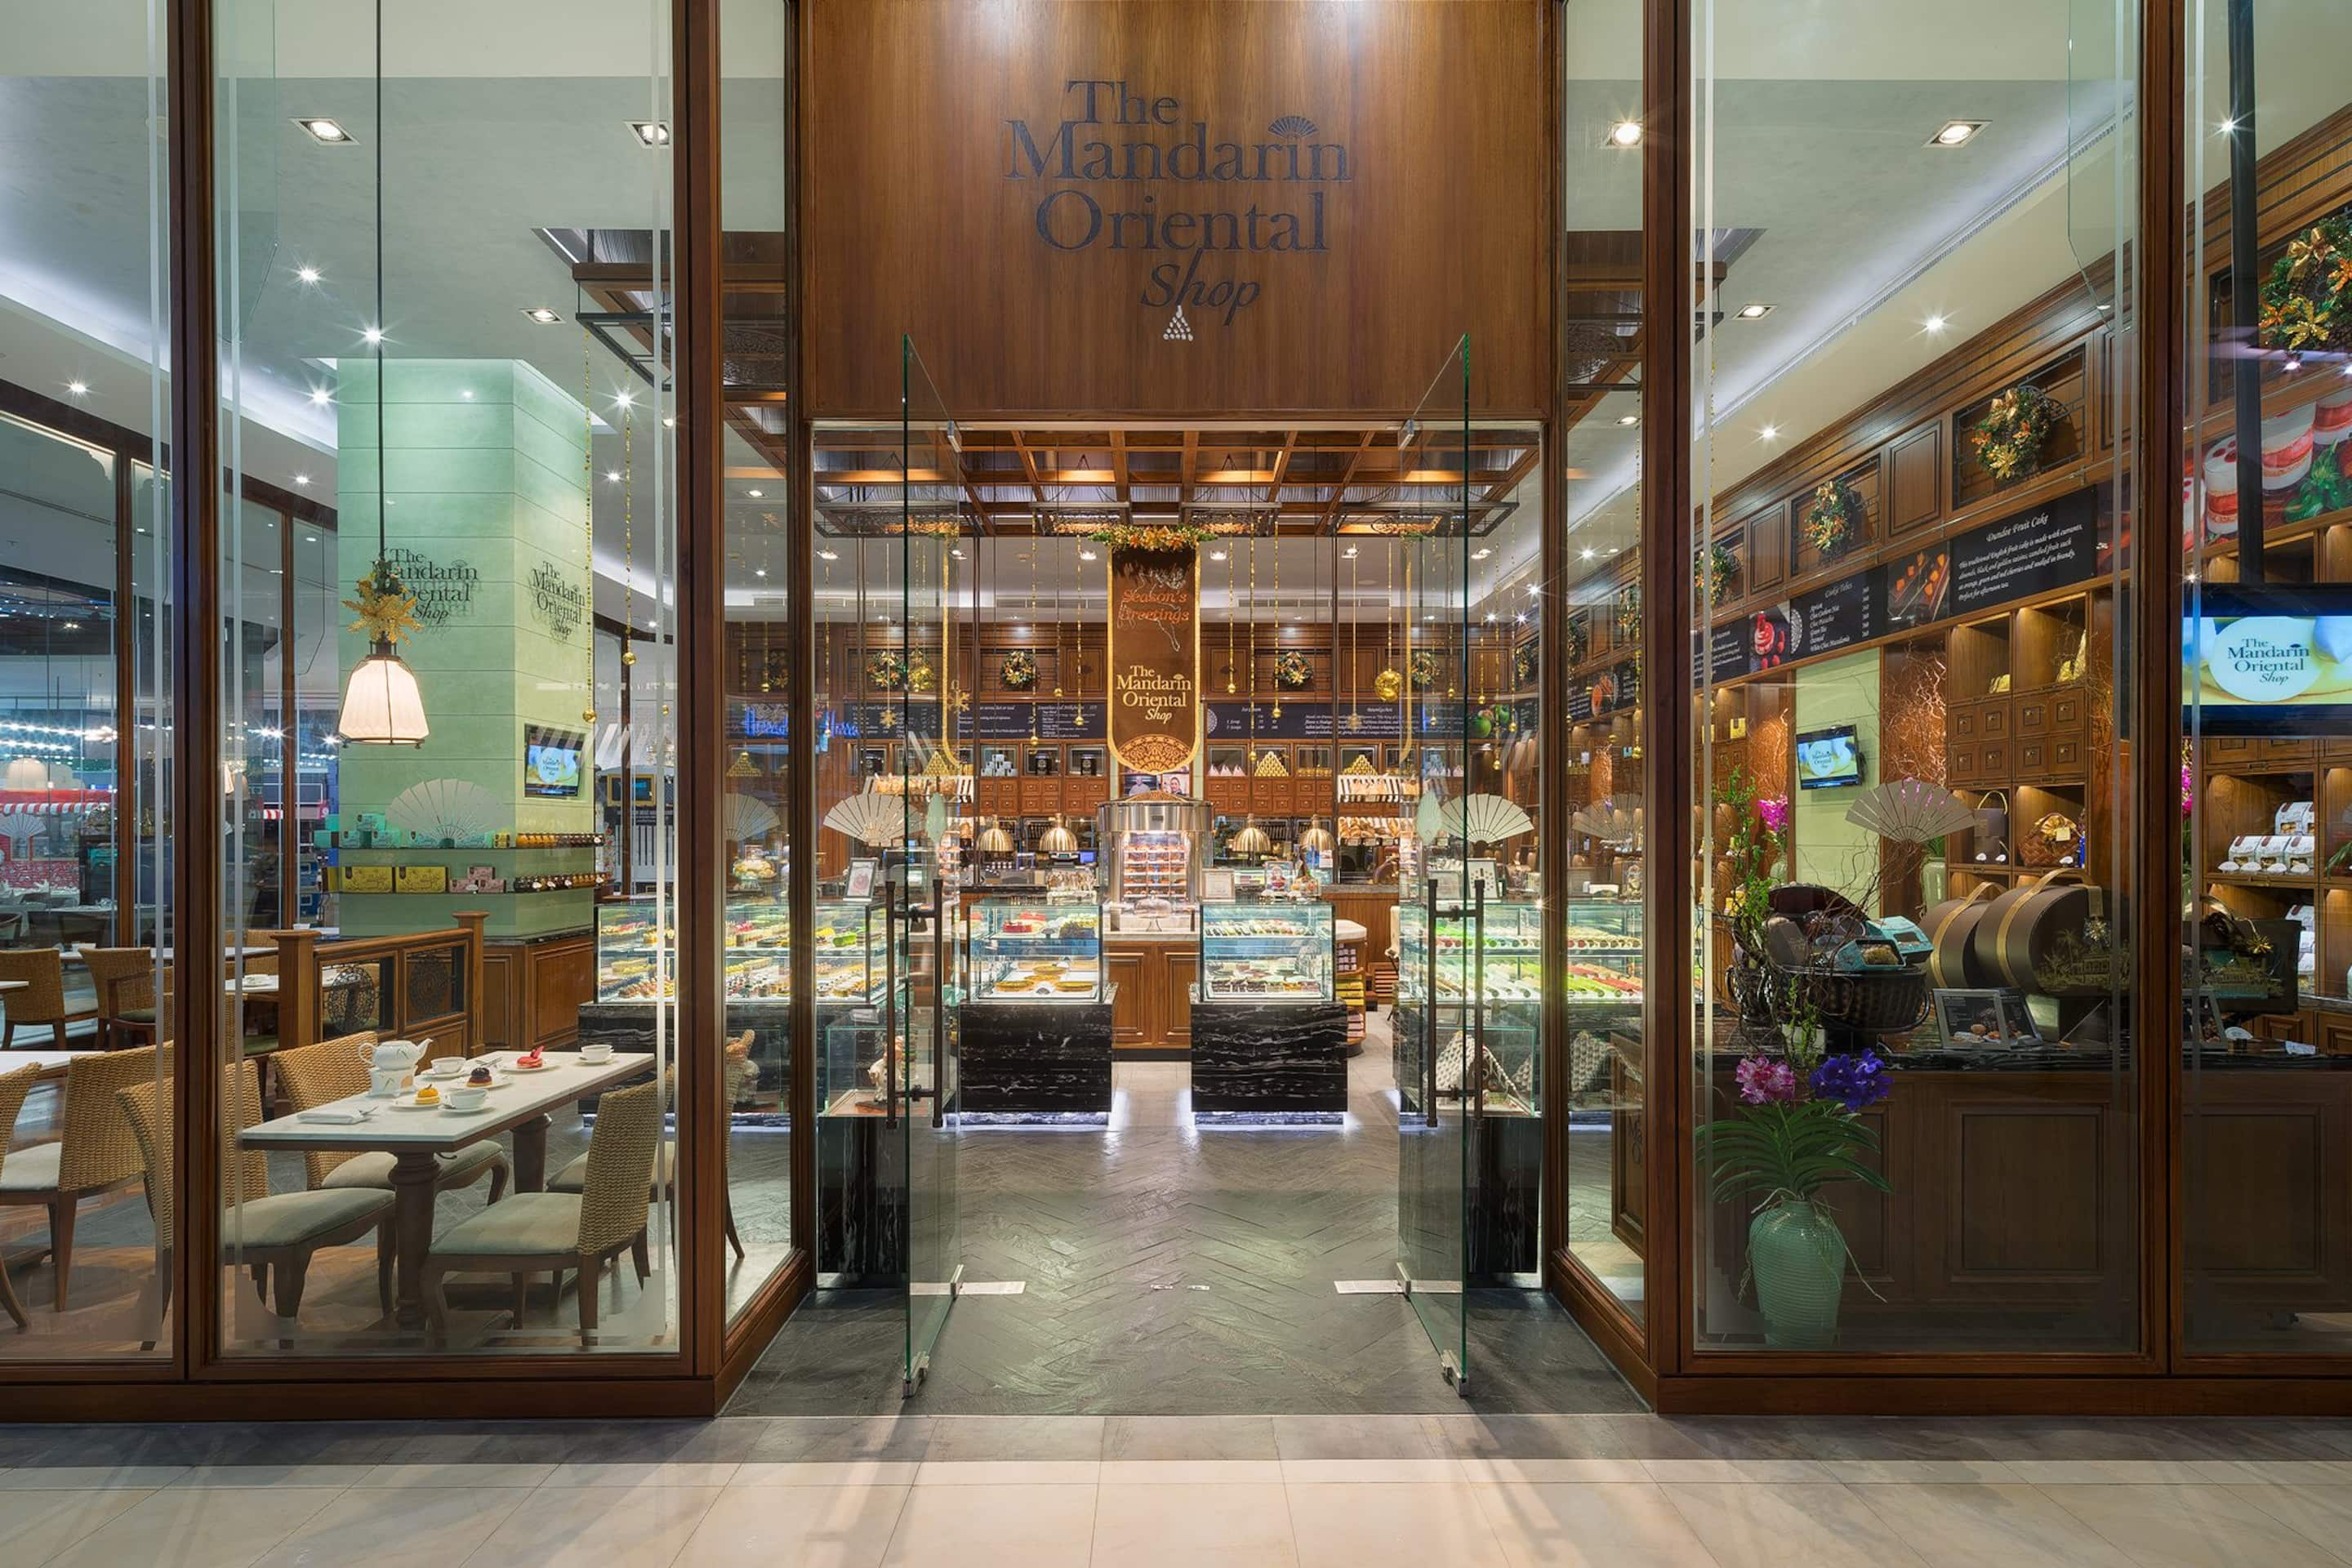 The Mandarin Oriental Shop Cake Shops On The Chao Phraya